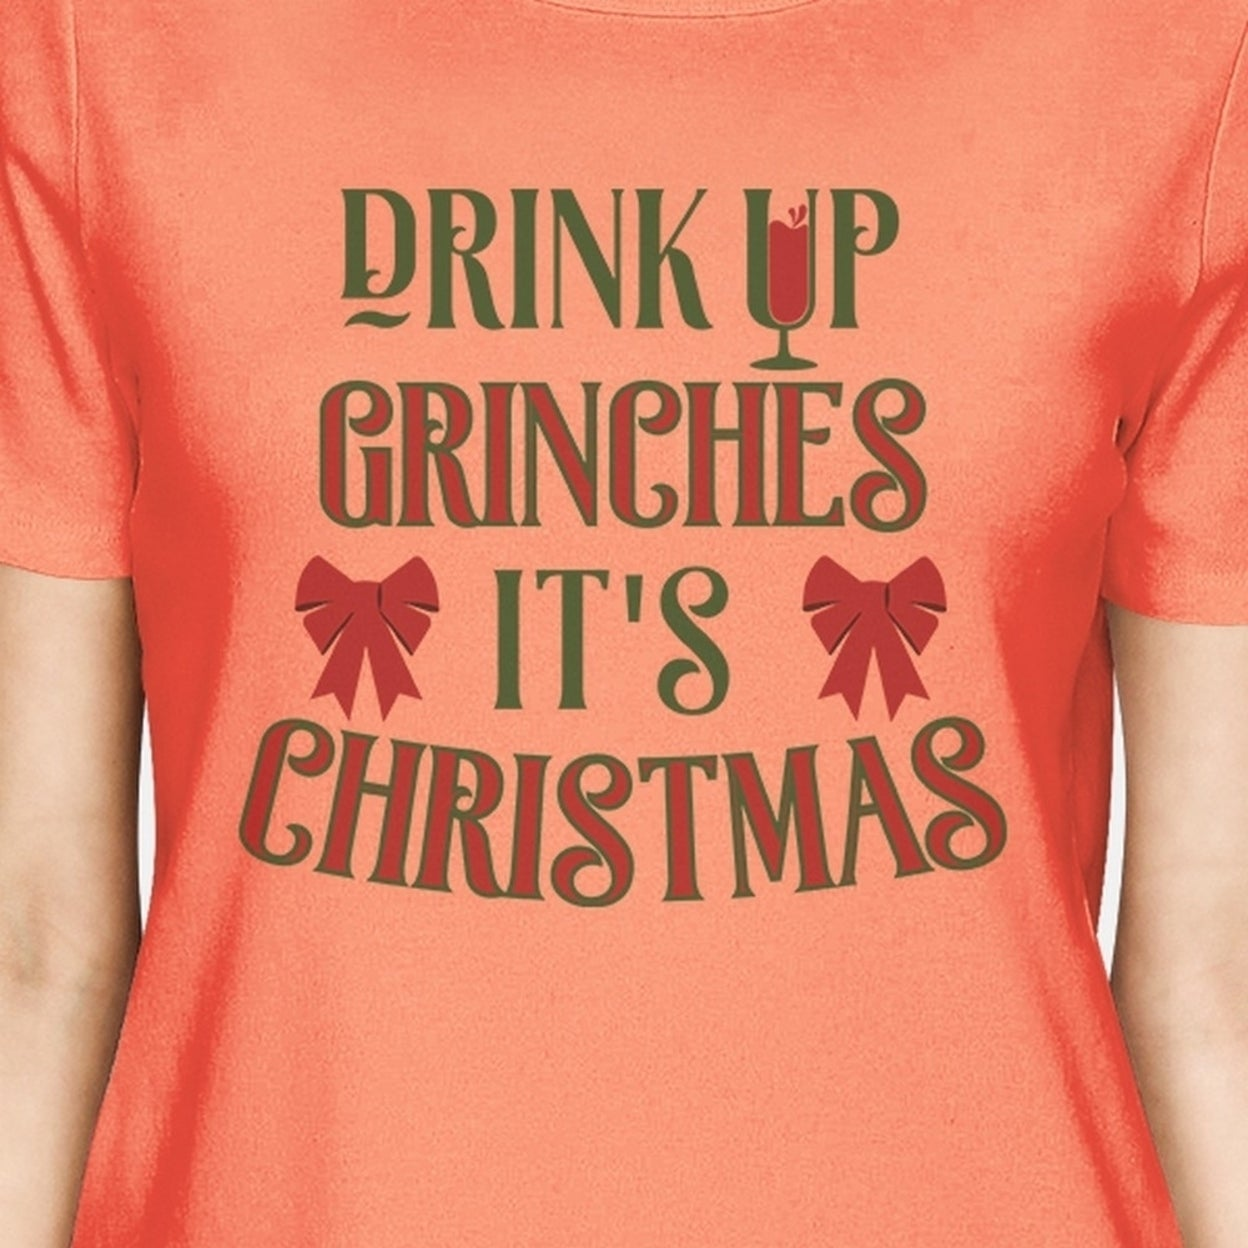 8d851c85 Shop Drink Up Grinches Its Christmas Tshirt Funny Womens Winter Top Gift -  On Sale - Free Shipping On Orders Over $45 - Overstock - 22998793